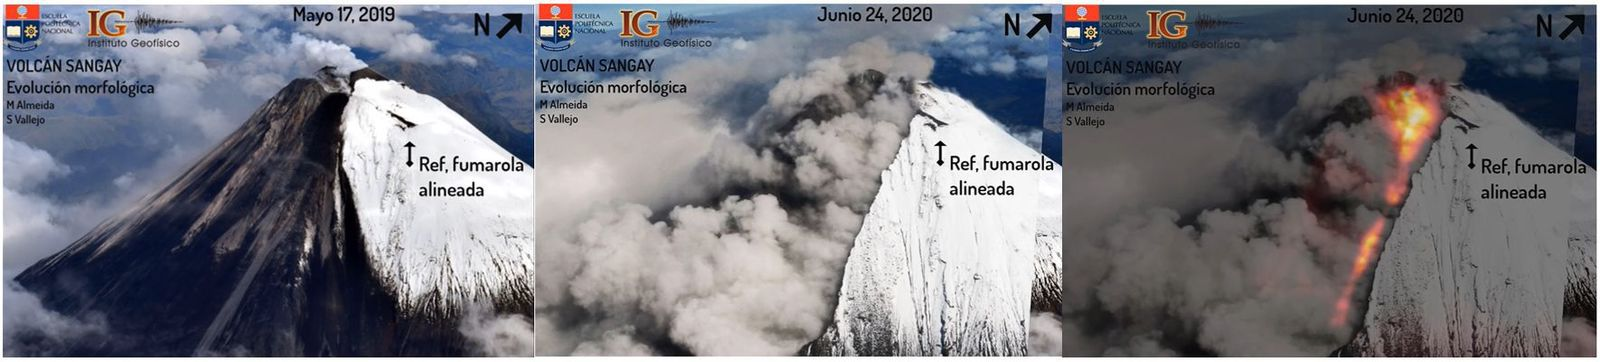 Sangay - Aerial and thermal photographic sequence of the southern flank of the Sangay volcano for the dates May 17, 2019 (left: visible image) and June 24, 2020 (medium: visible image, right: visible-thermal overlay) showing the morphological changes on this flank, associated with the formation of a ravine on the southeast flank and the modification of the summit. - Photos / Thermal image: M Almeida, IG EPN. - one click to enlarge